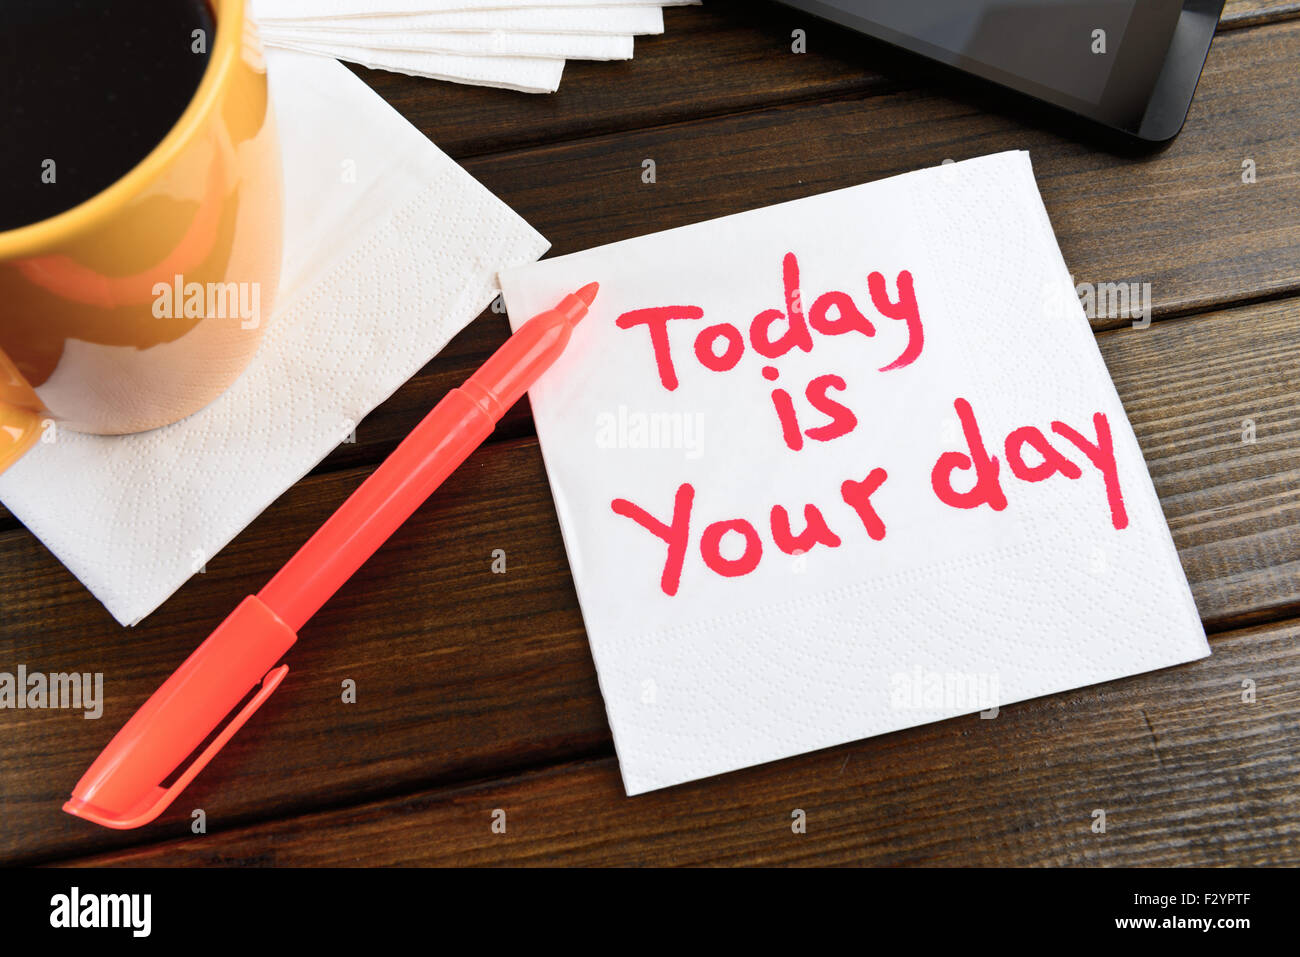 napkin sketch 'Today is your day' on cafe - Stock Image